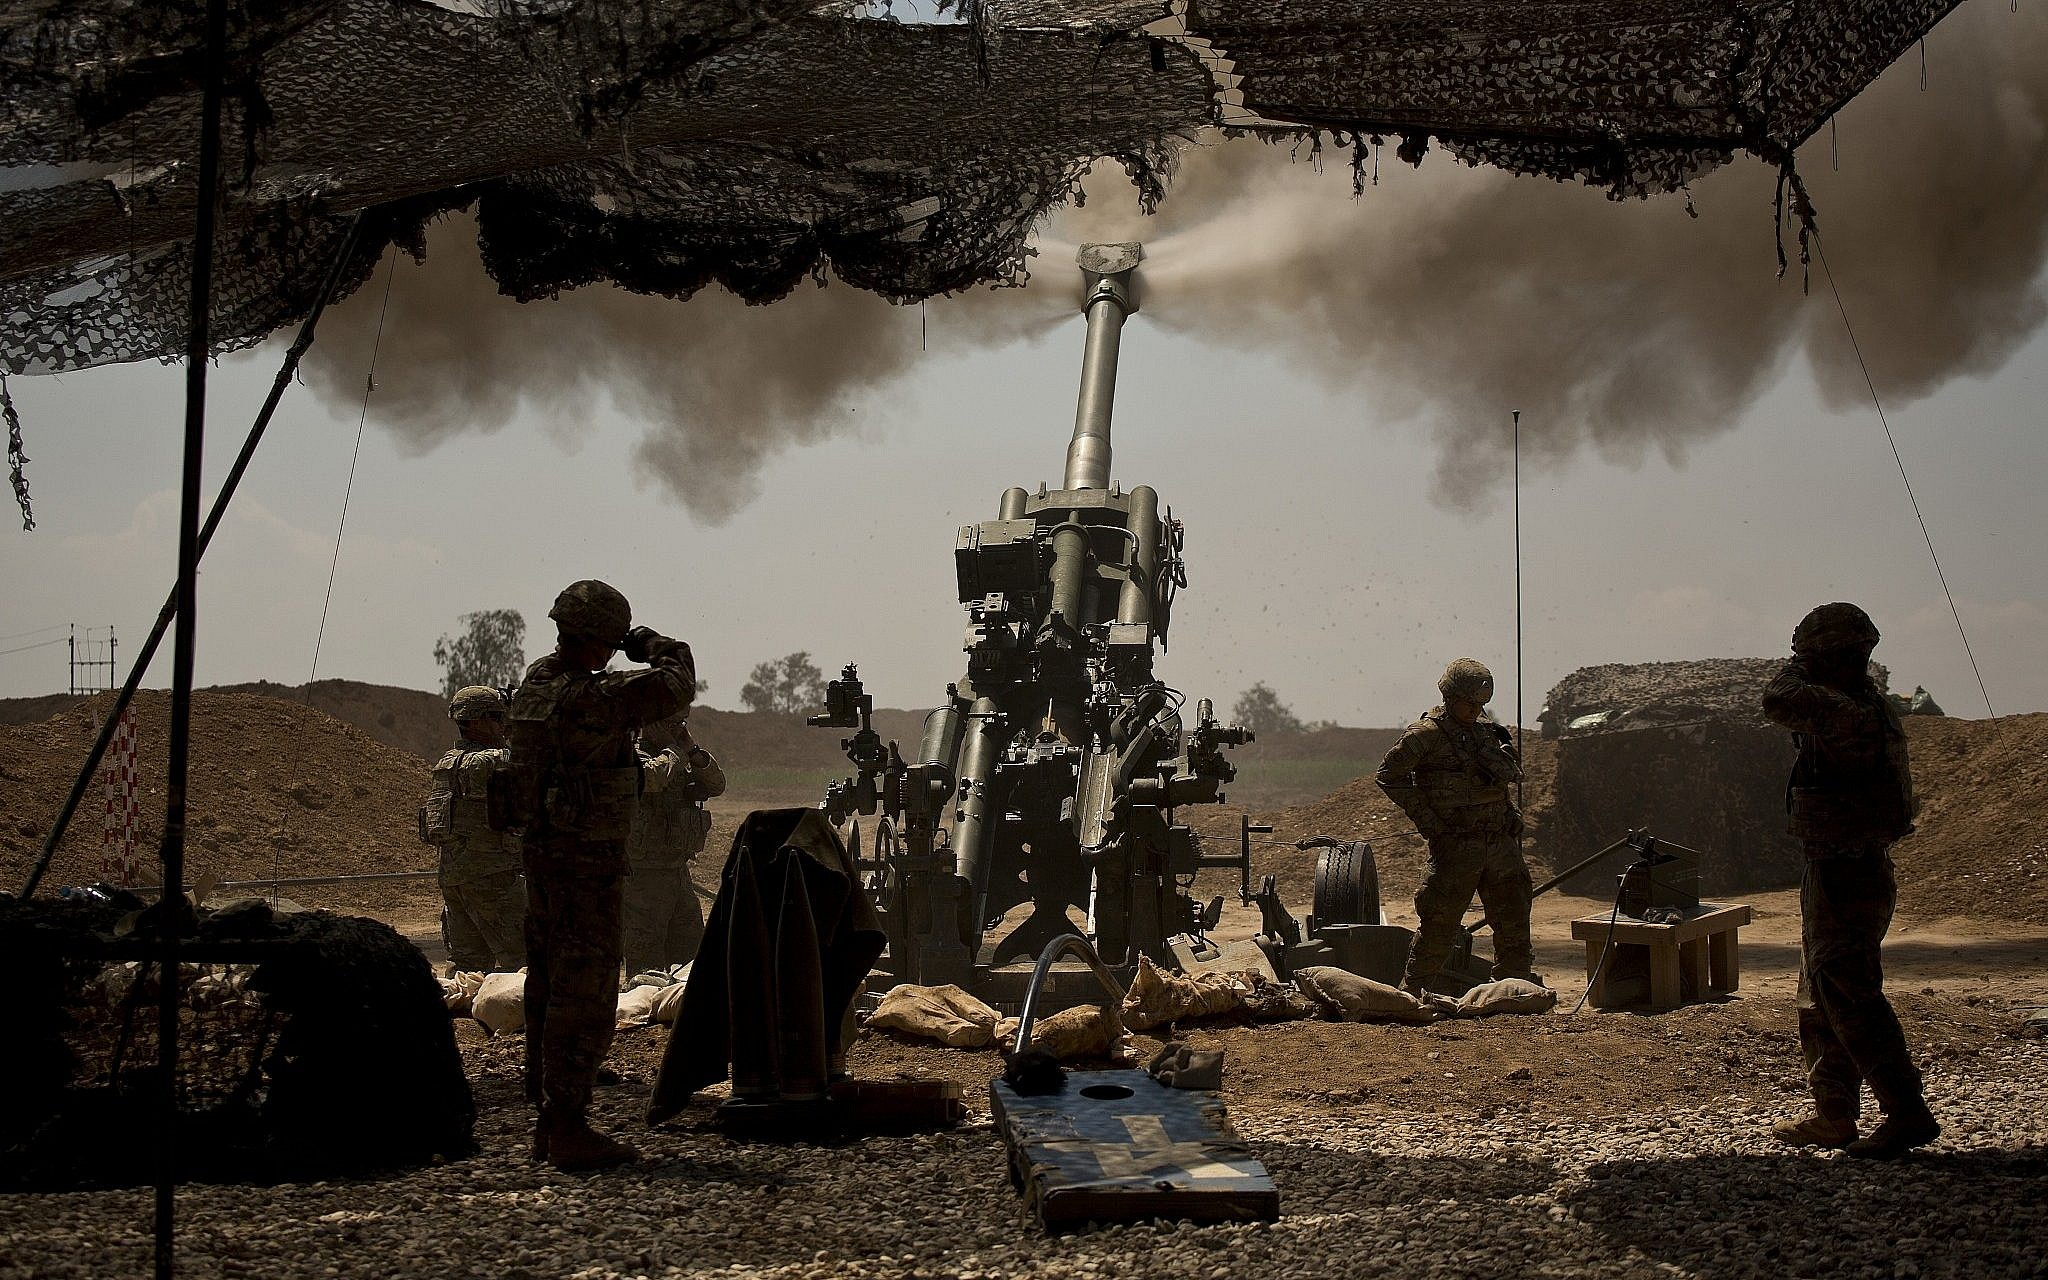 IS could retake territory in months if left alone, Pentagon